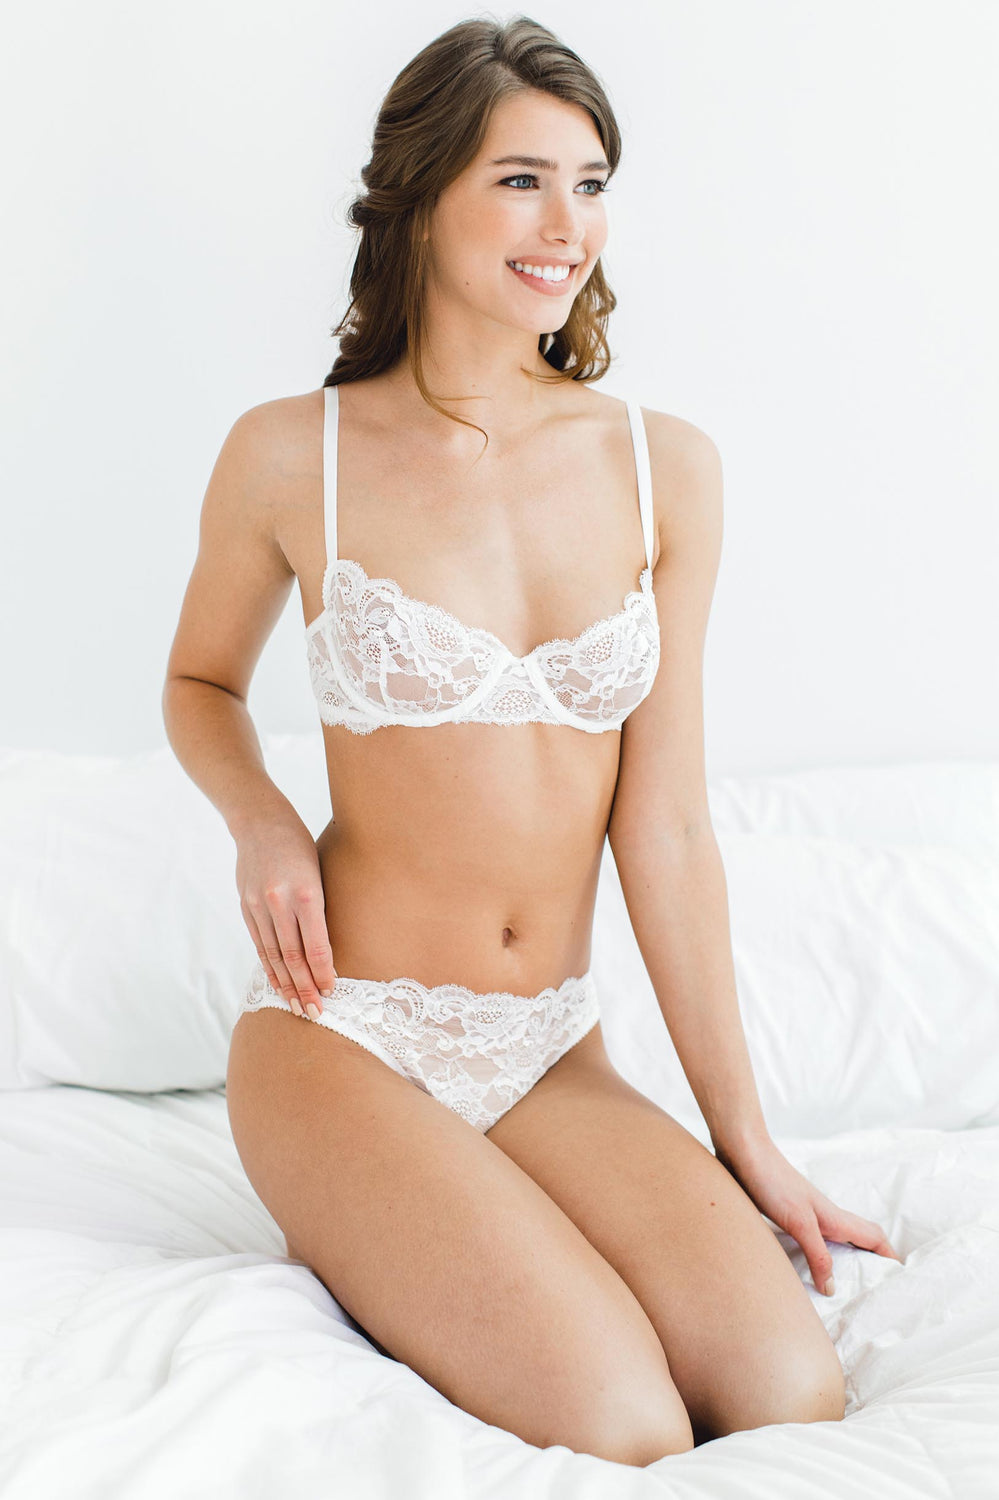 Peony French lace underwire balconette demi cup bra in Ivory